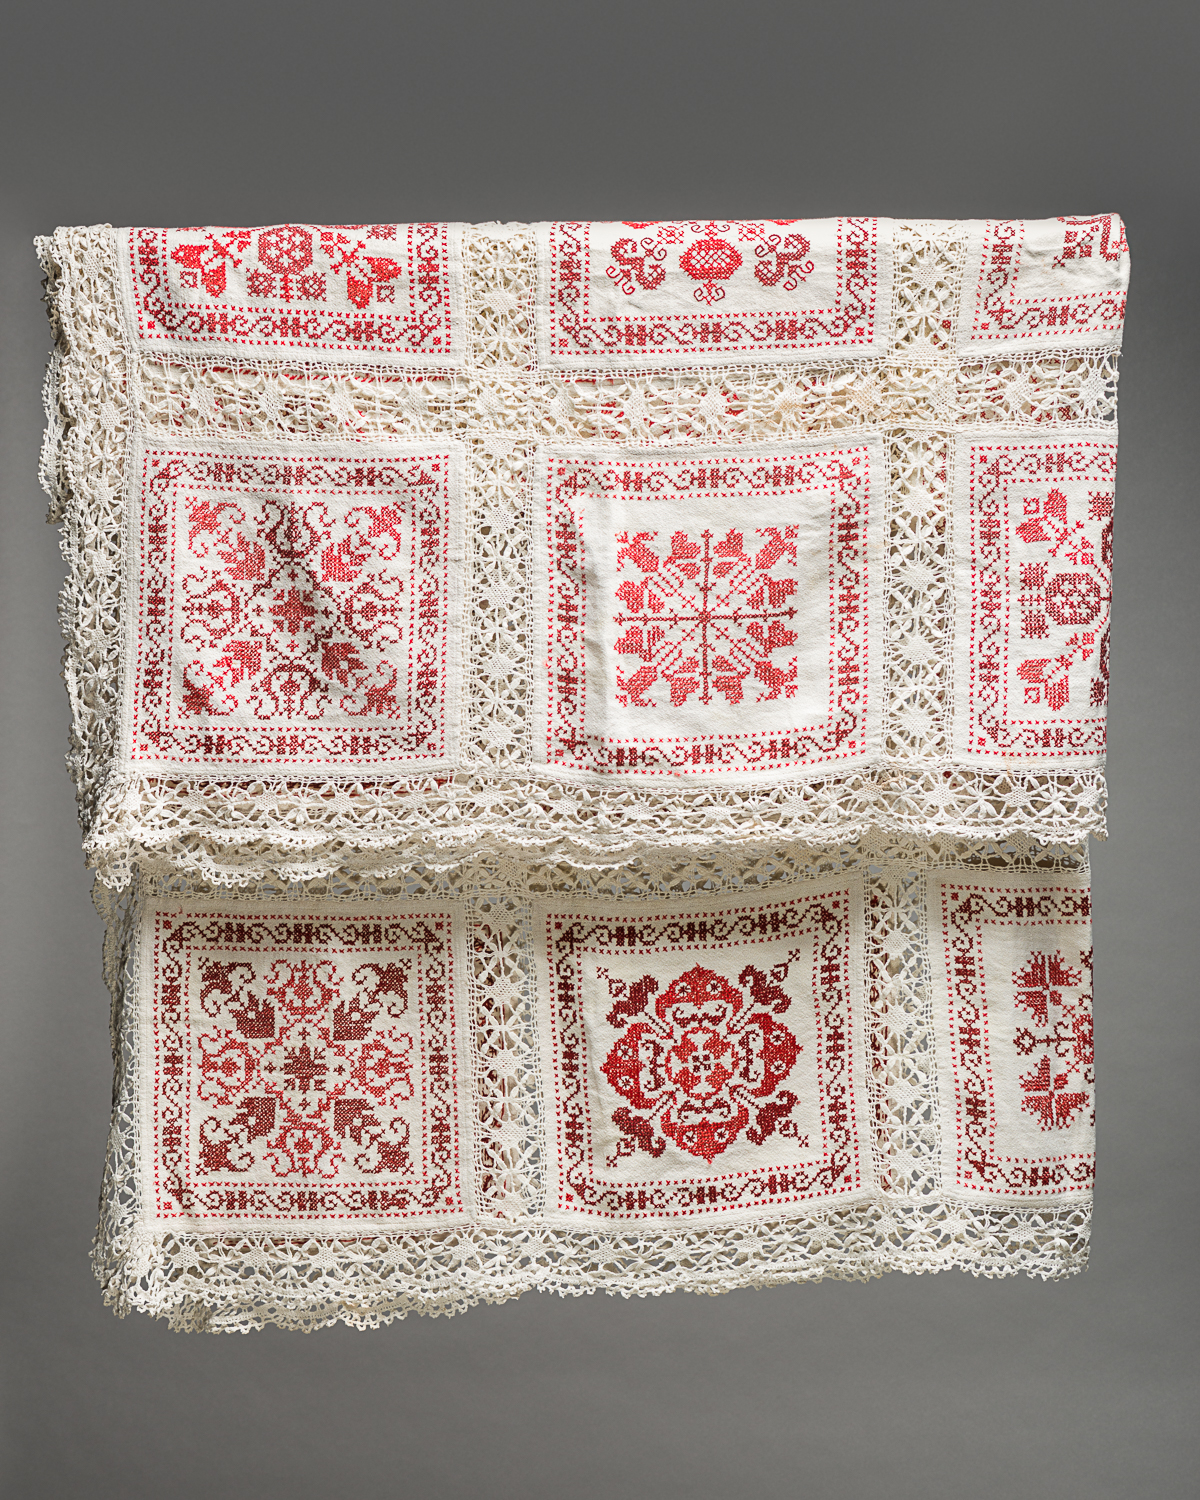 This tablecloth was created by 50 Jewish girls in Berlin's Boehmstift orphanage in the early 1920's. (Photo: Peter Berra)